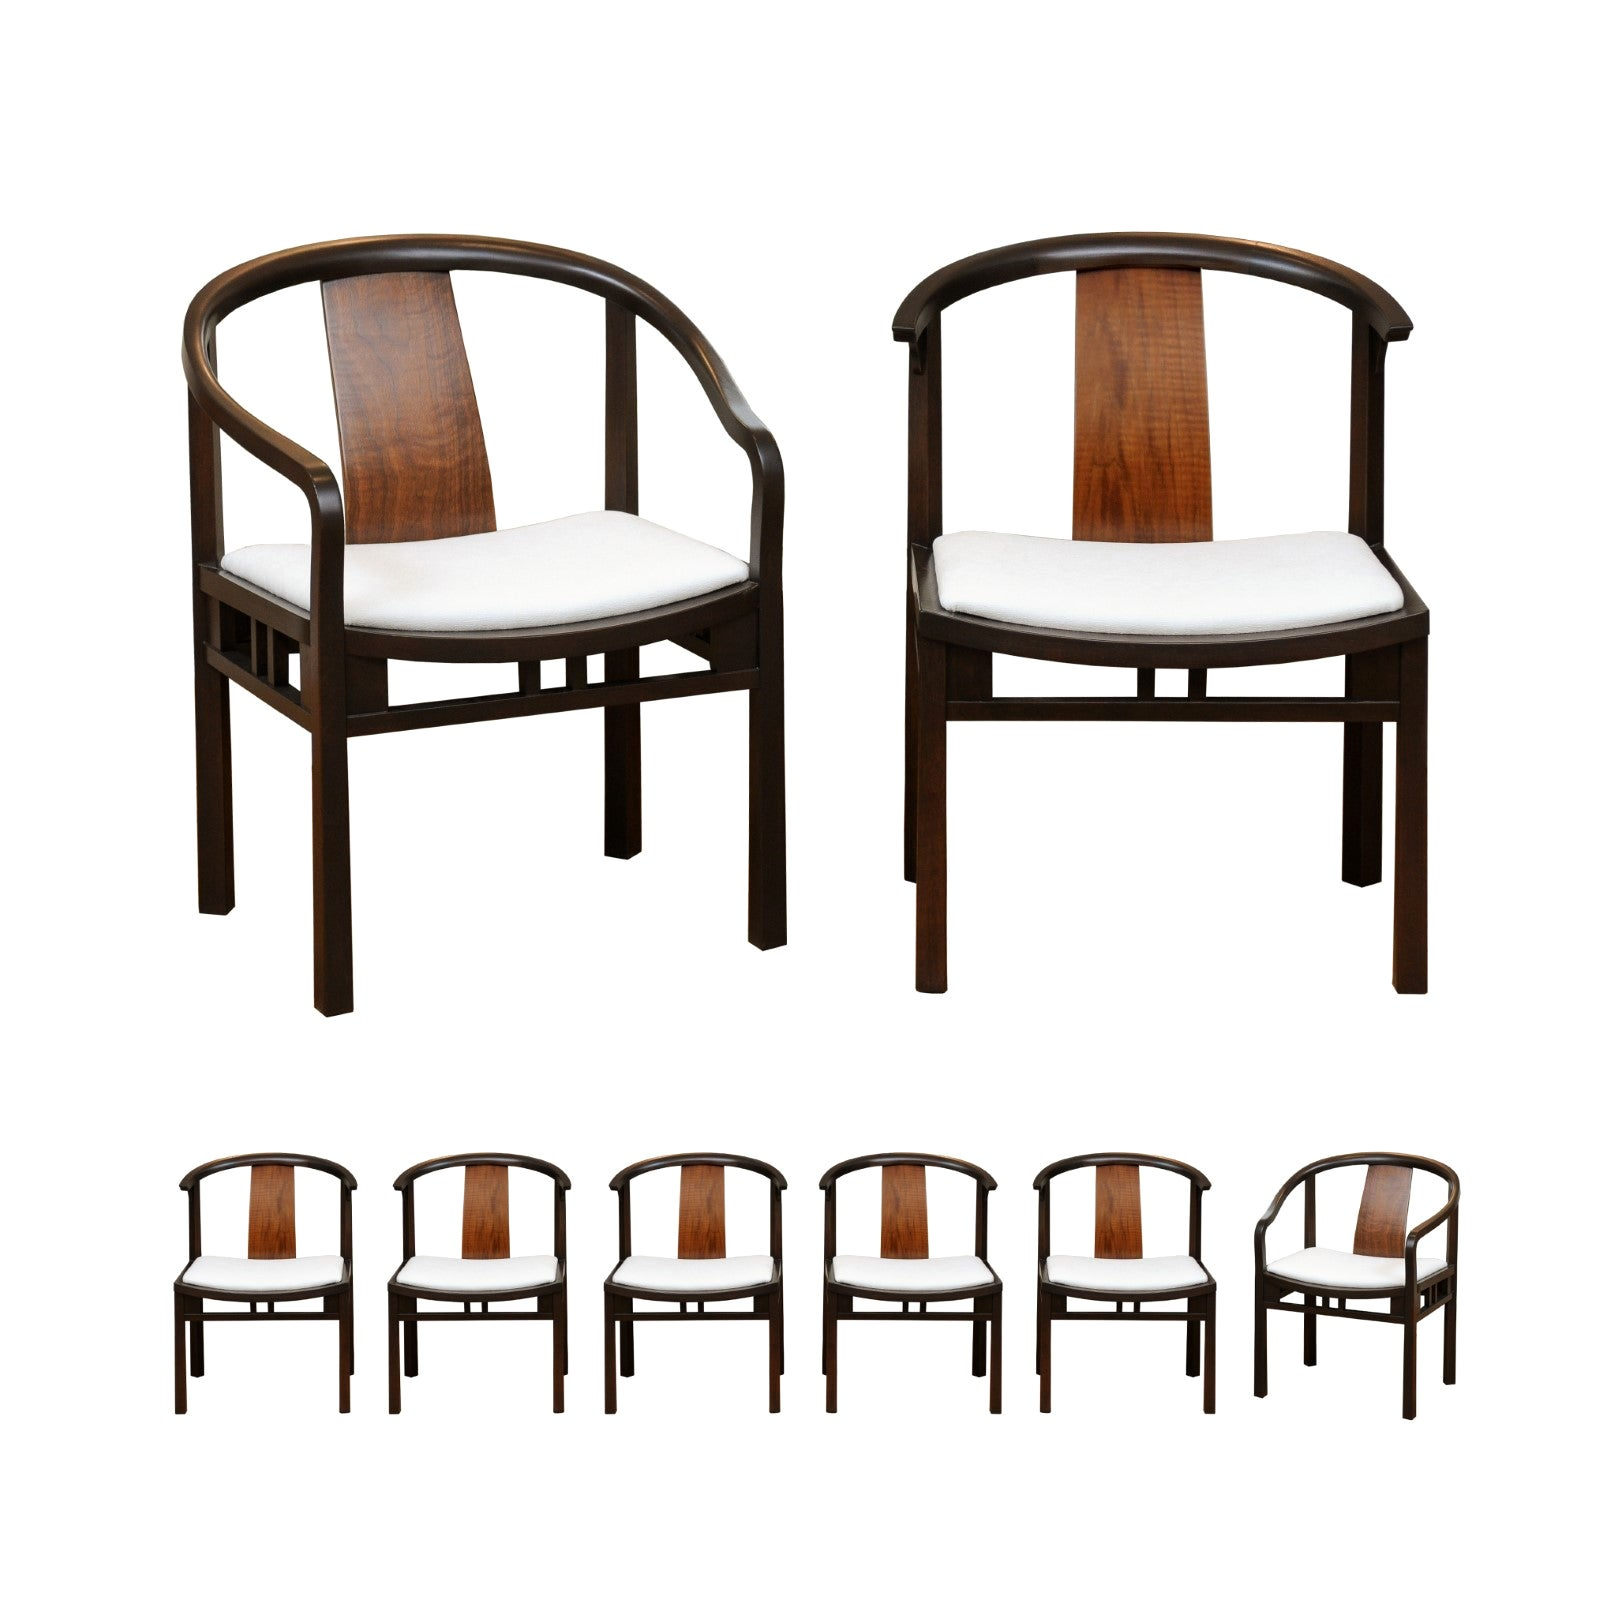 Circa 1955, Stellar Set of 8 Walnut Dining Chairs by Michael Taylor for Baker